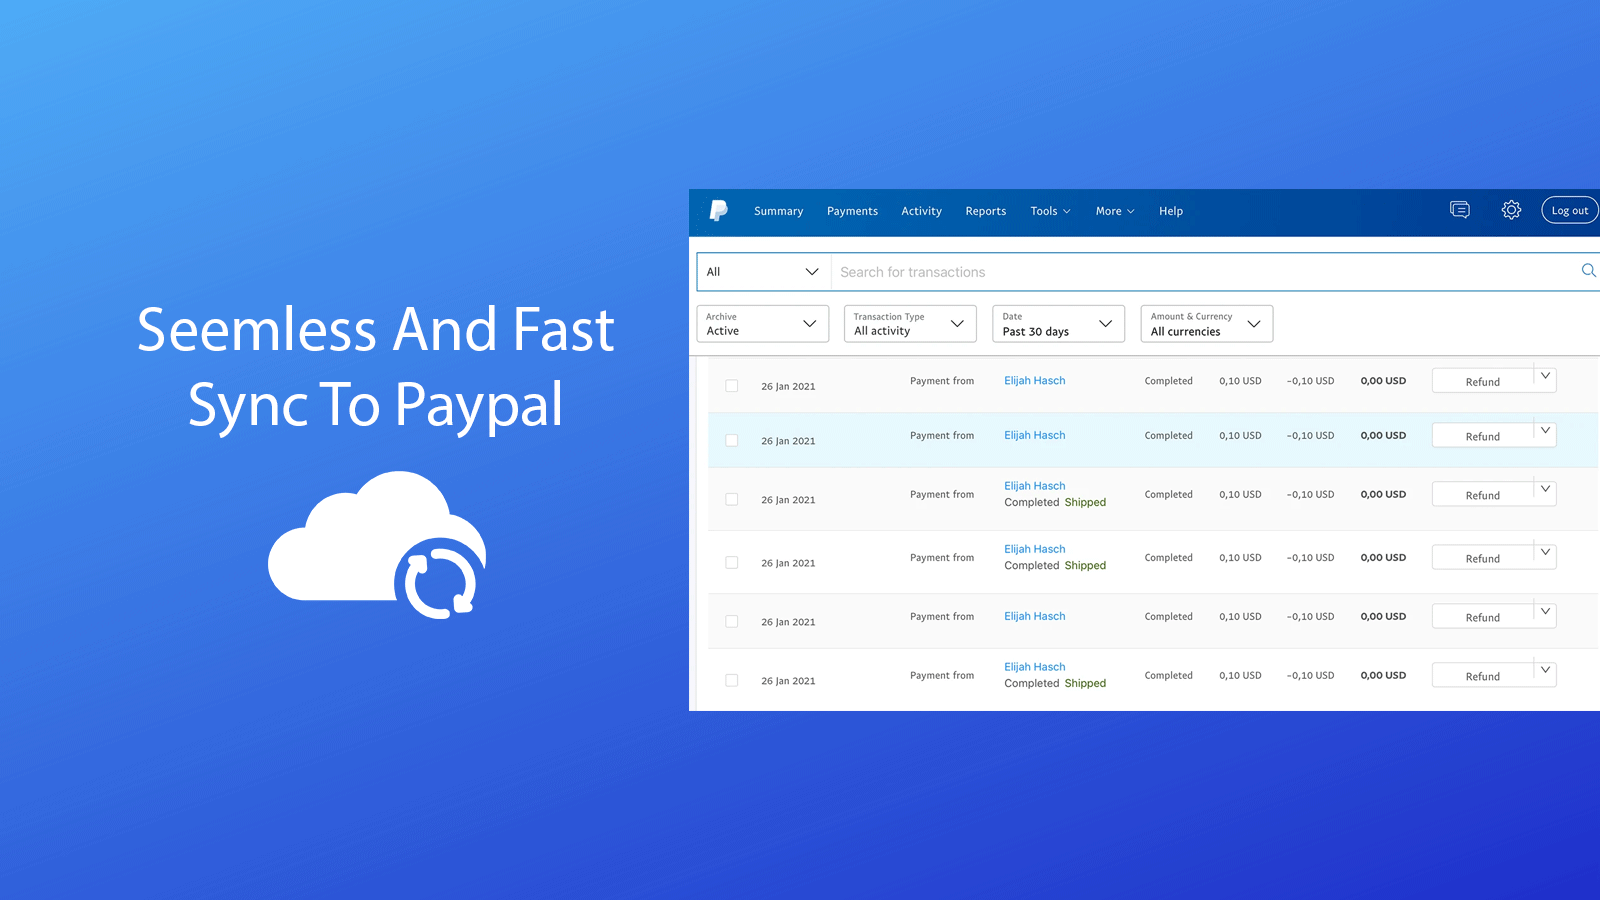 Seemless and fast Tracking Sync to Paypal